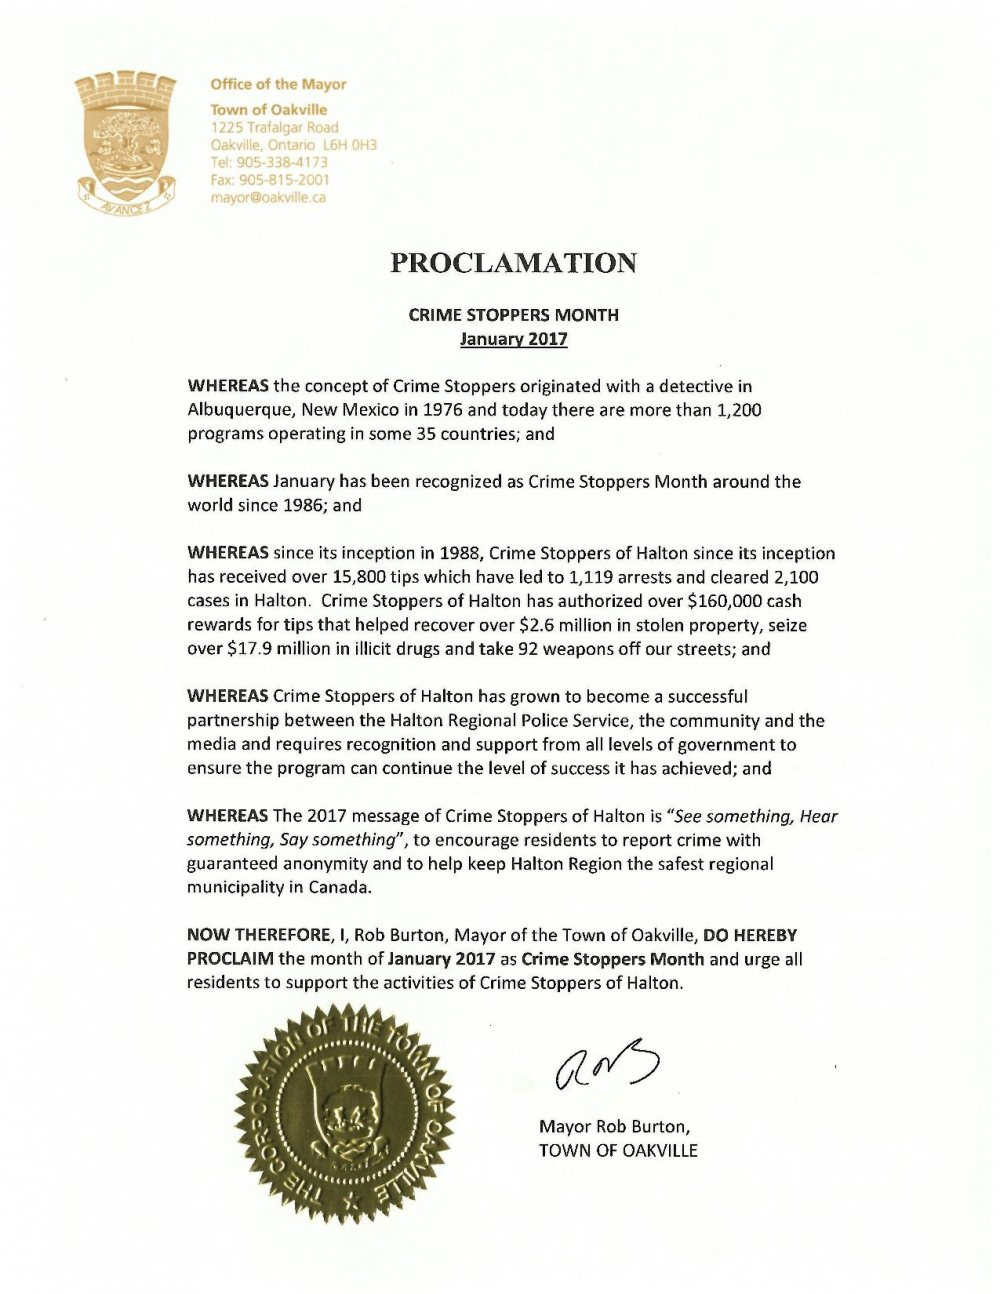 Oakville proclamation